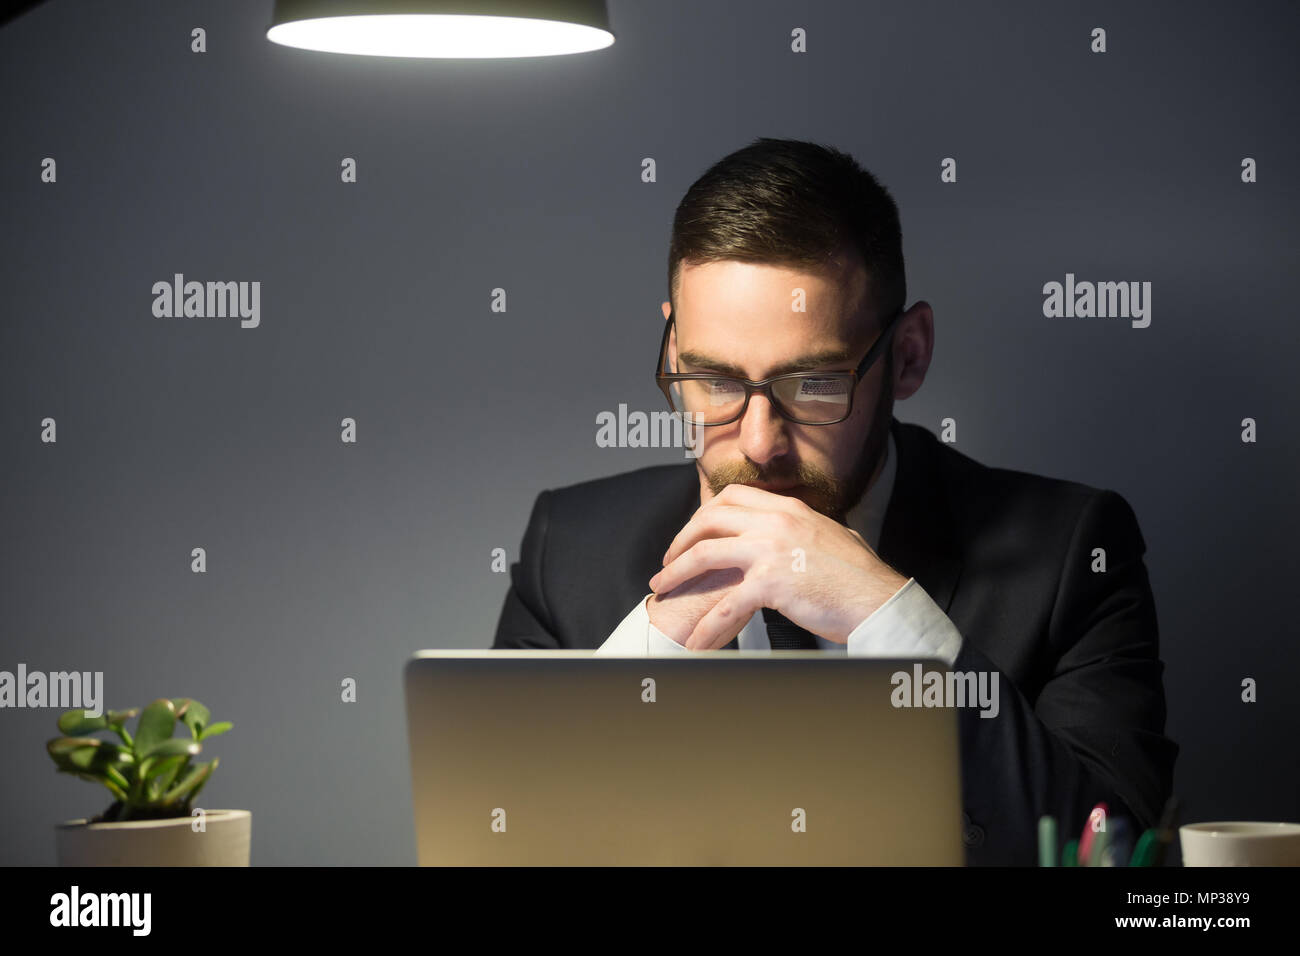 Concerned male thinking about company problem solution - Stock Image